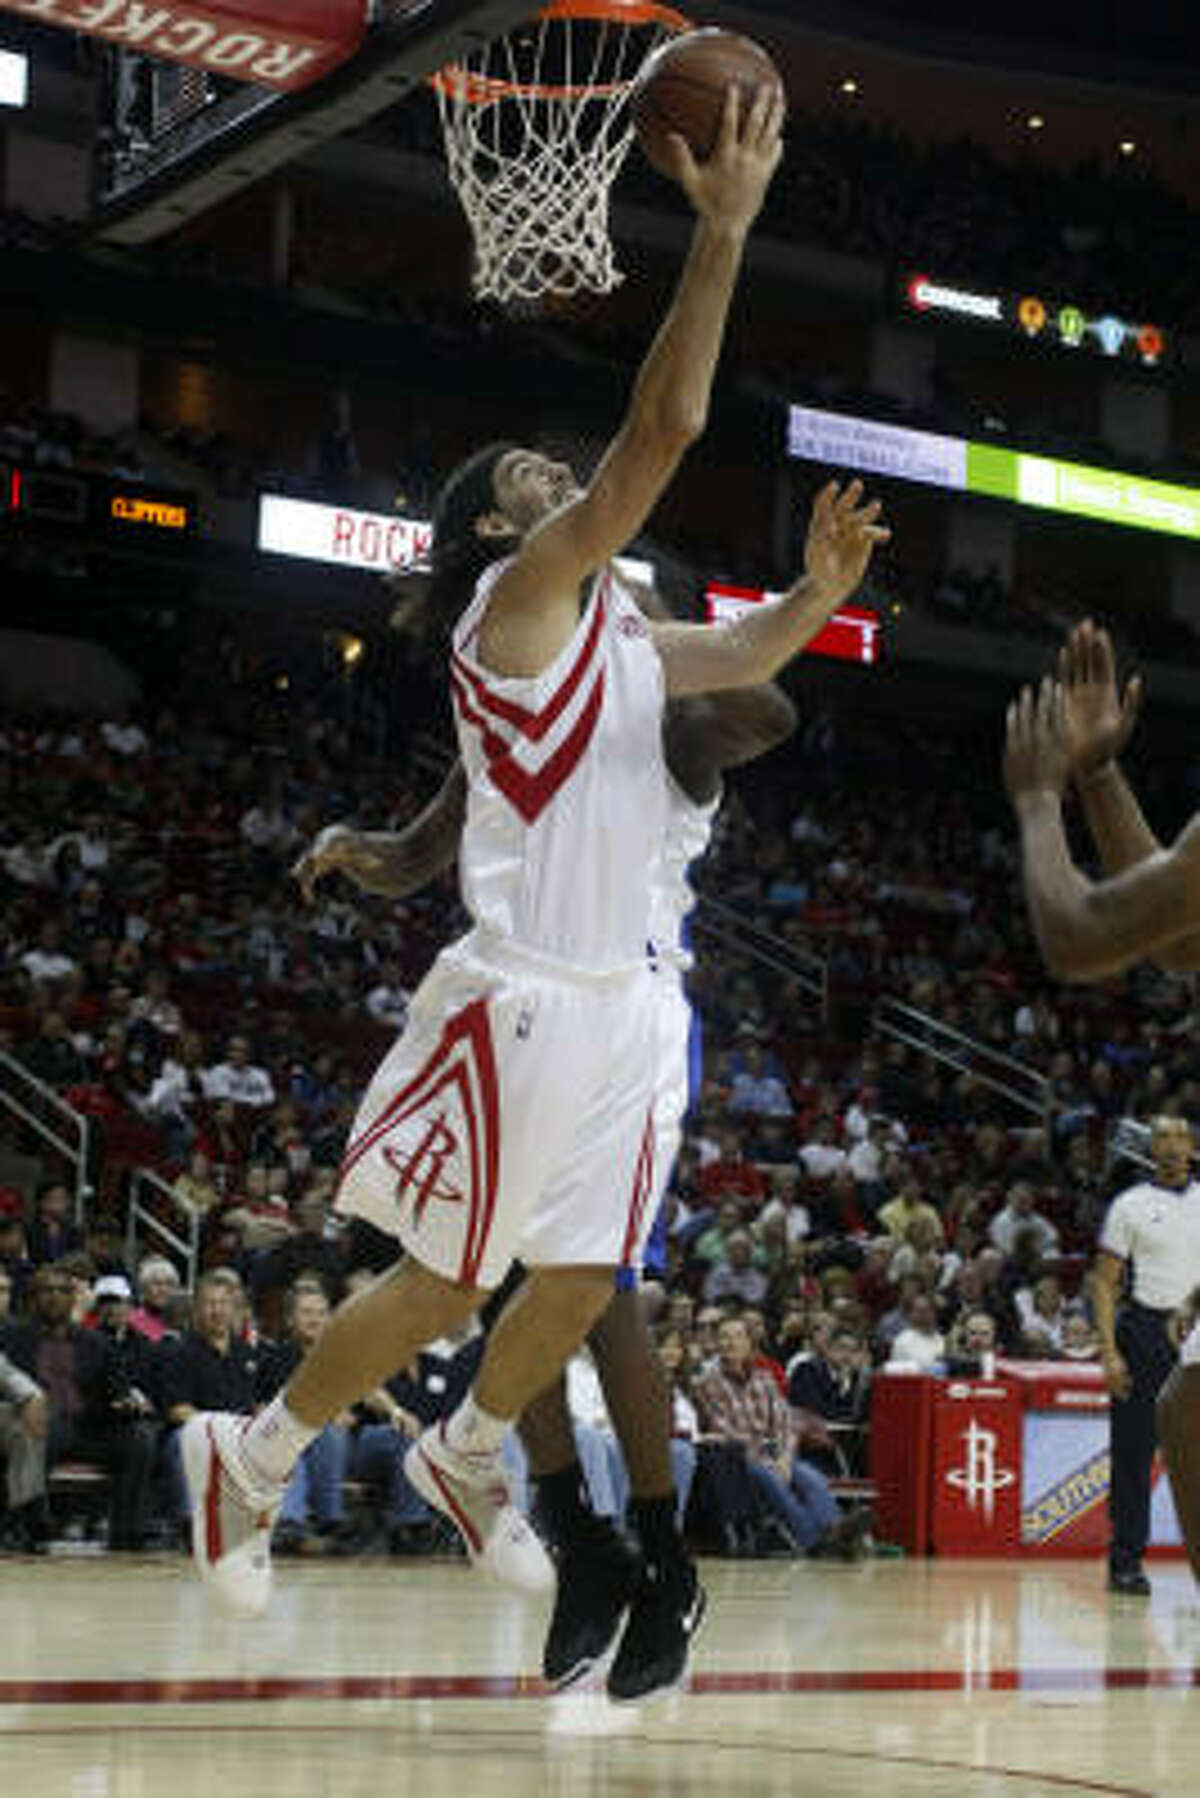 Luis Scola drives to the basket past Clippers defenders for an easy layup in the the second quarter.